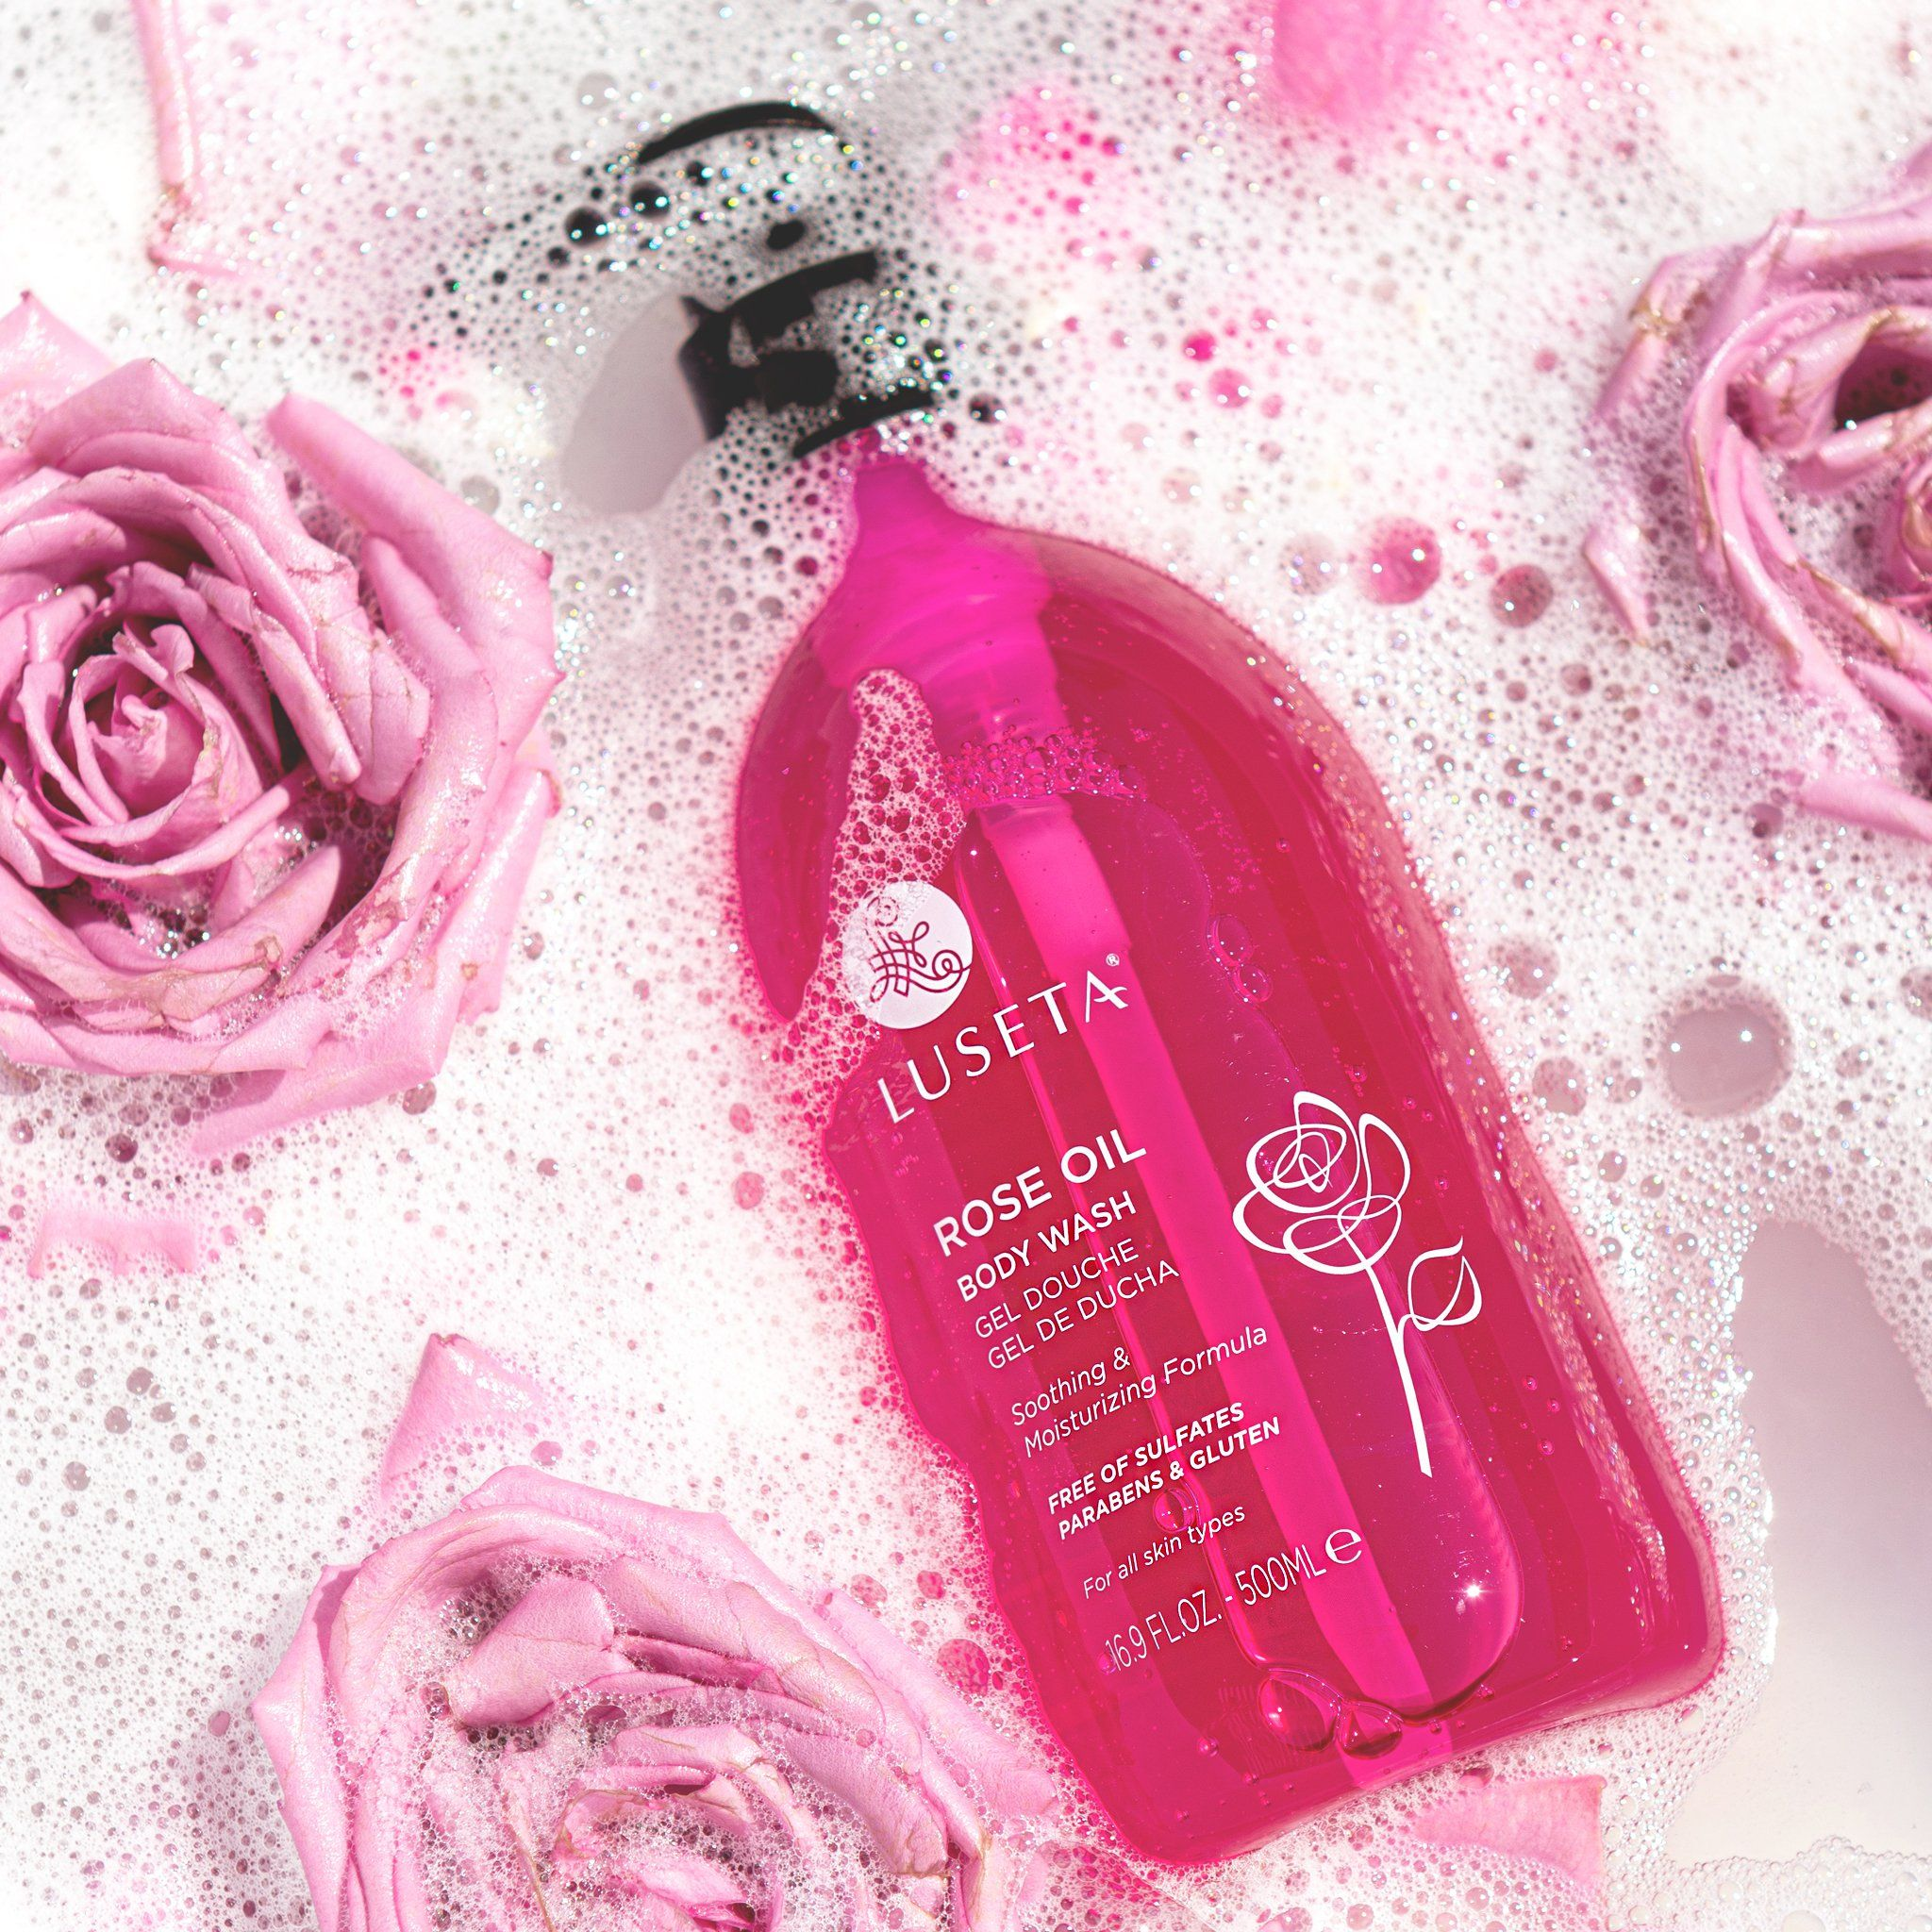 Rose Oil Body Wash - Luseta Beauty